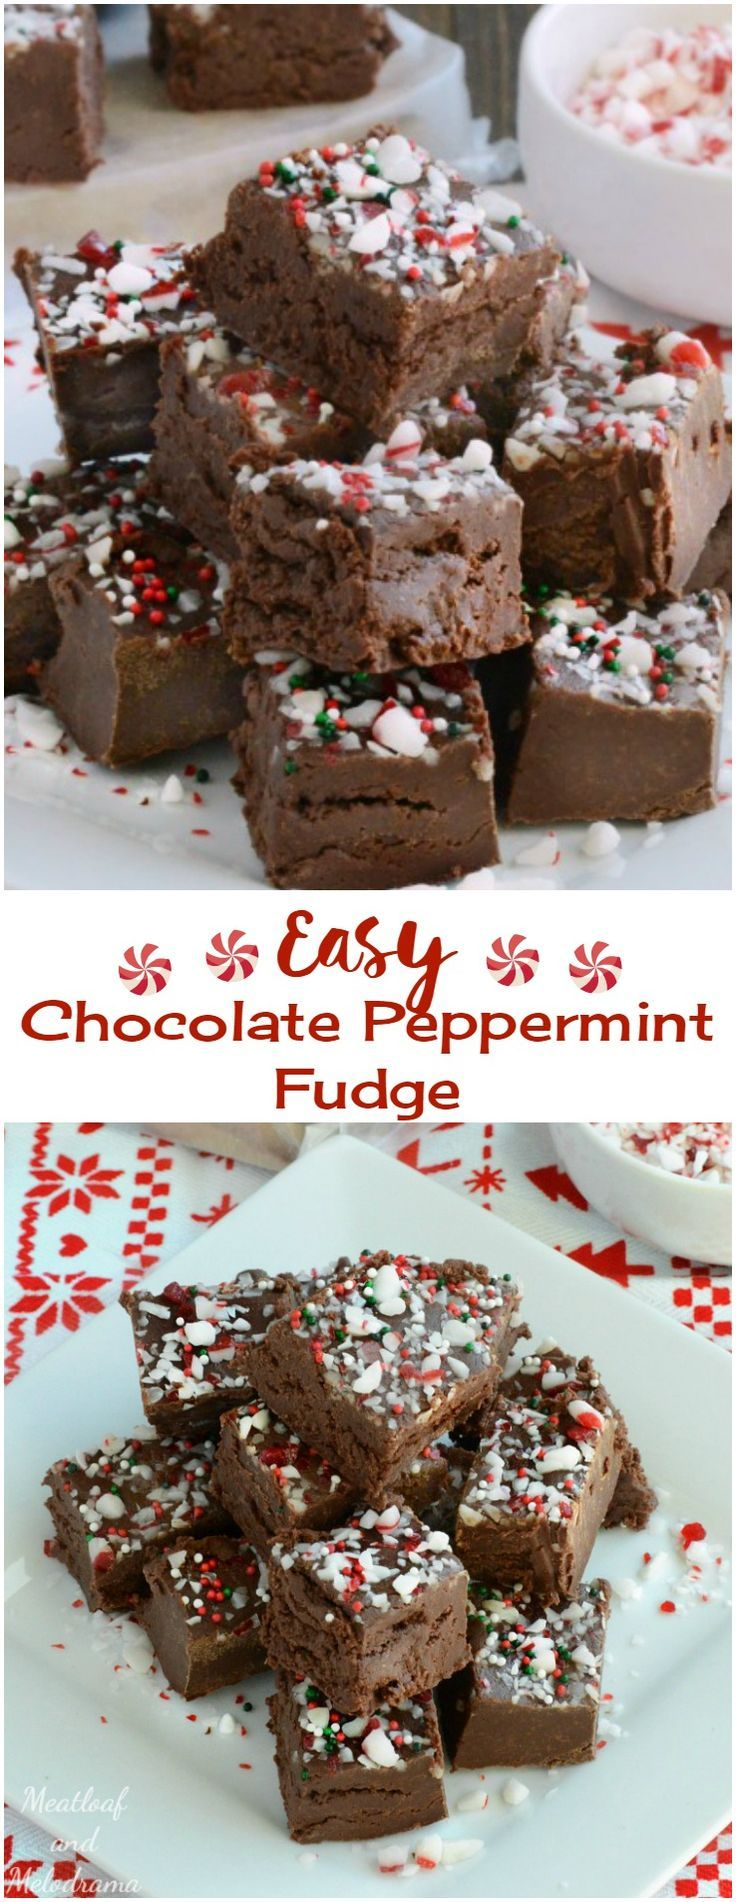 Easy Chocolate Peppermint Fudge #holidaytreats